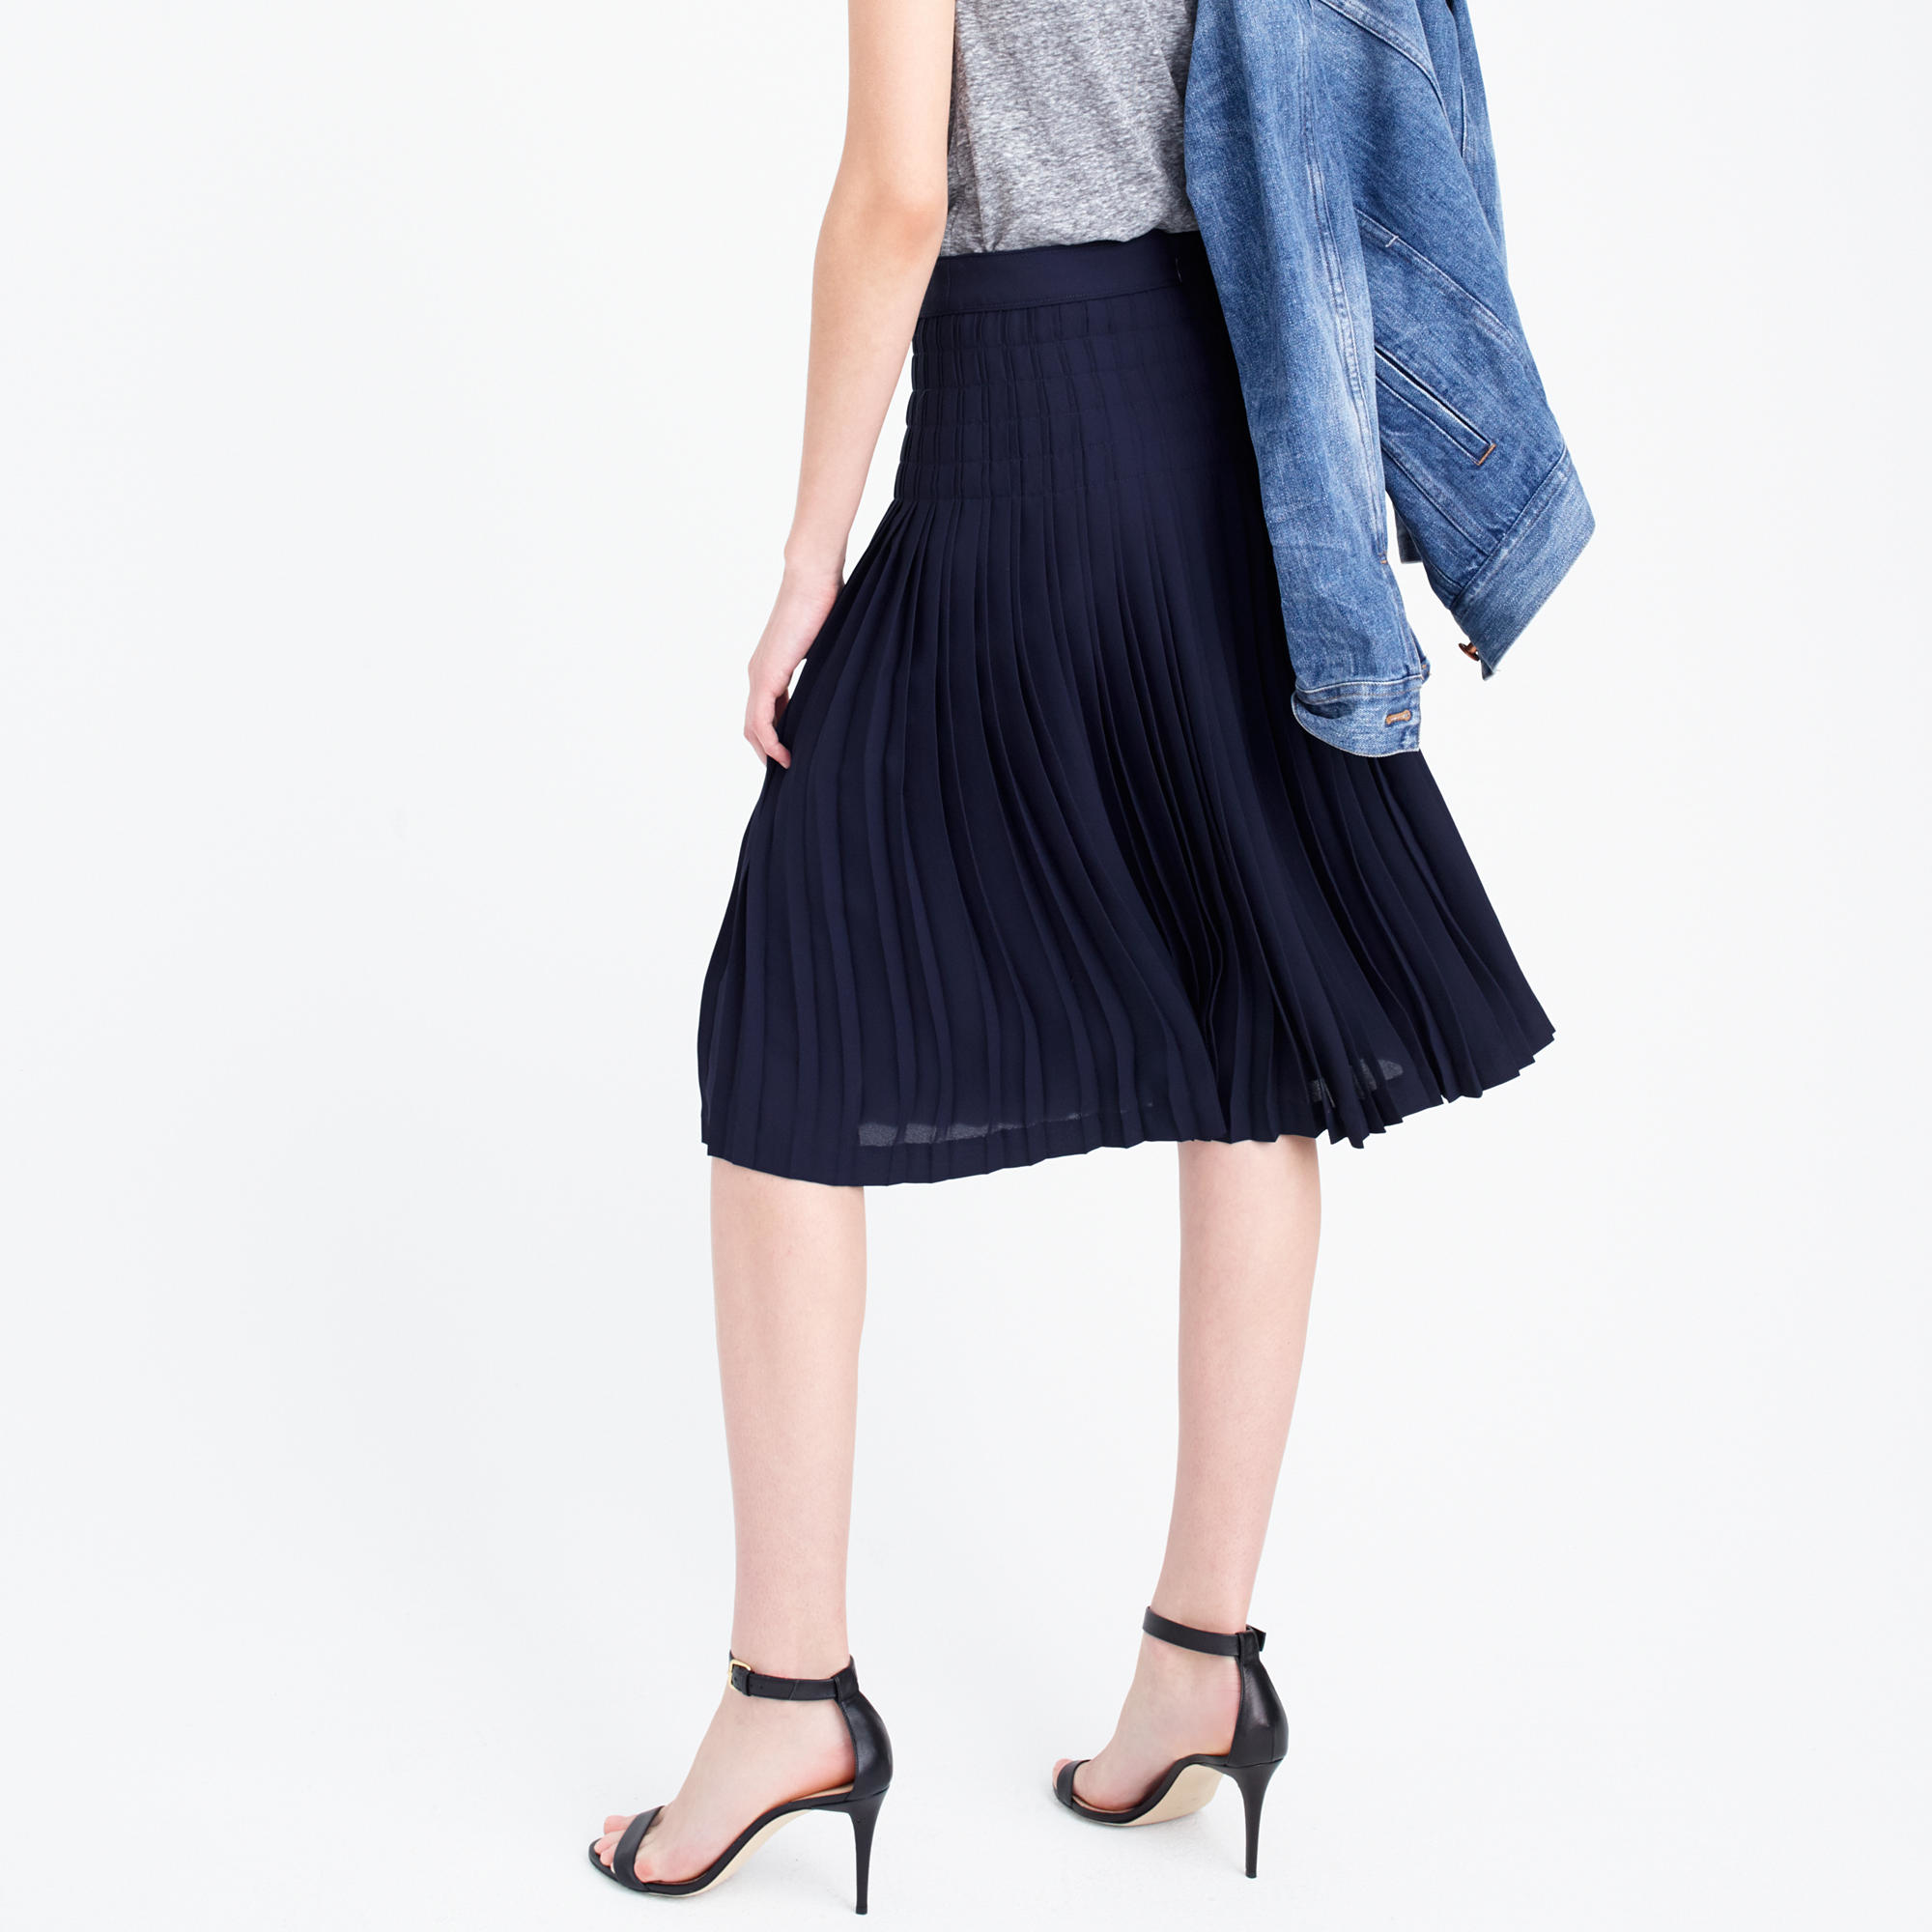 j crew micropleated midi skirt in blue navy lyst